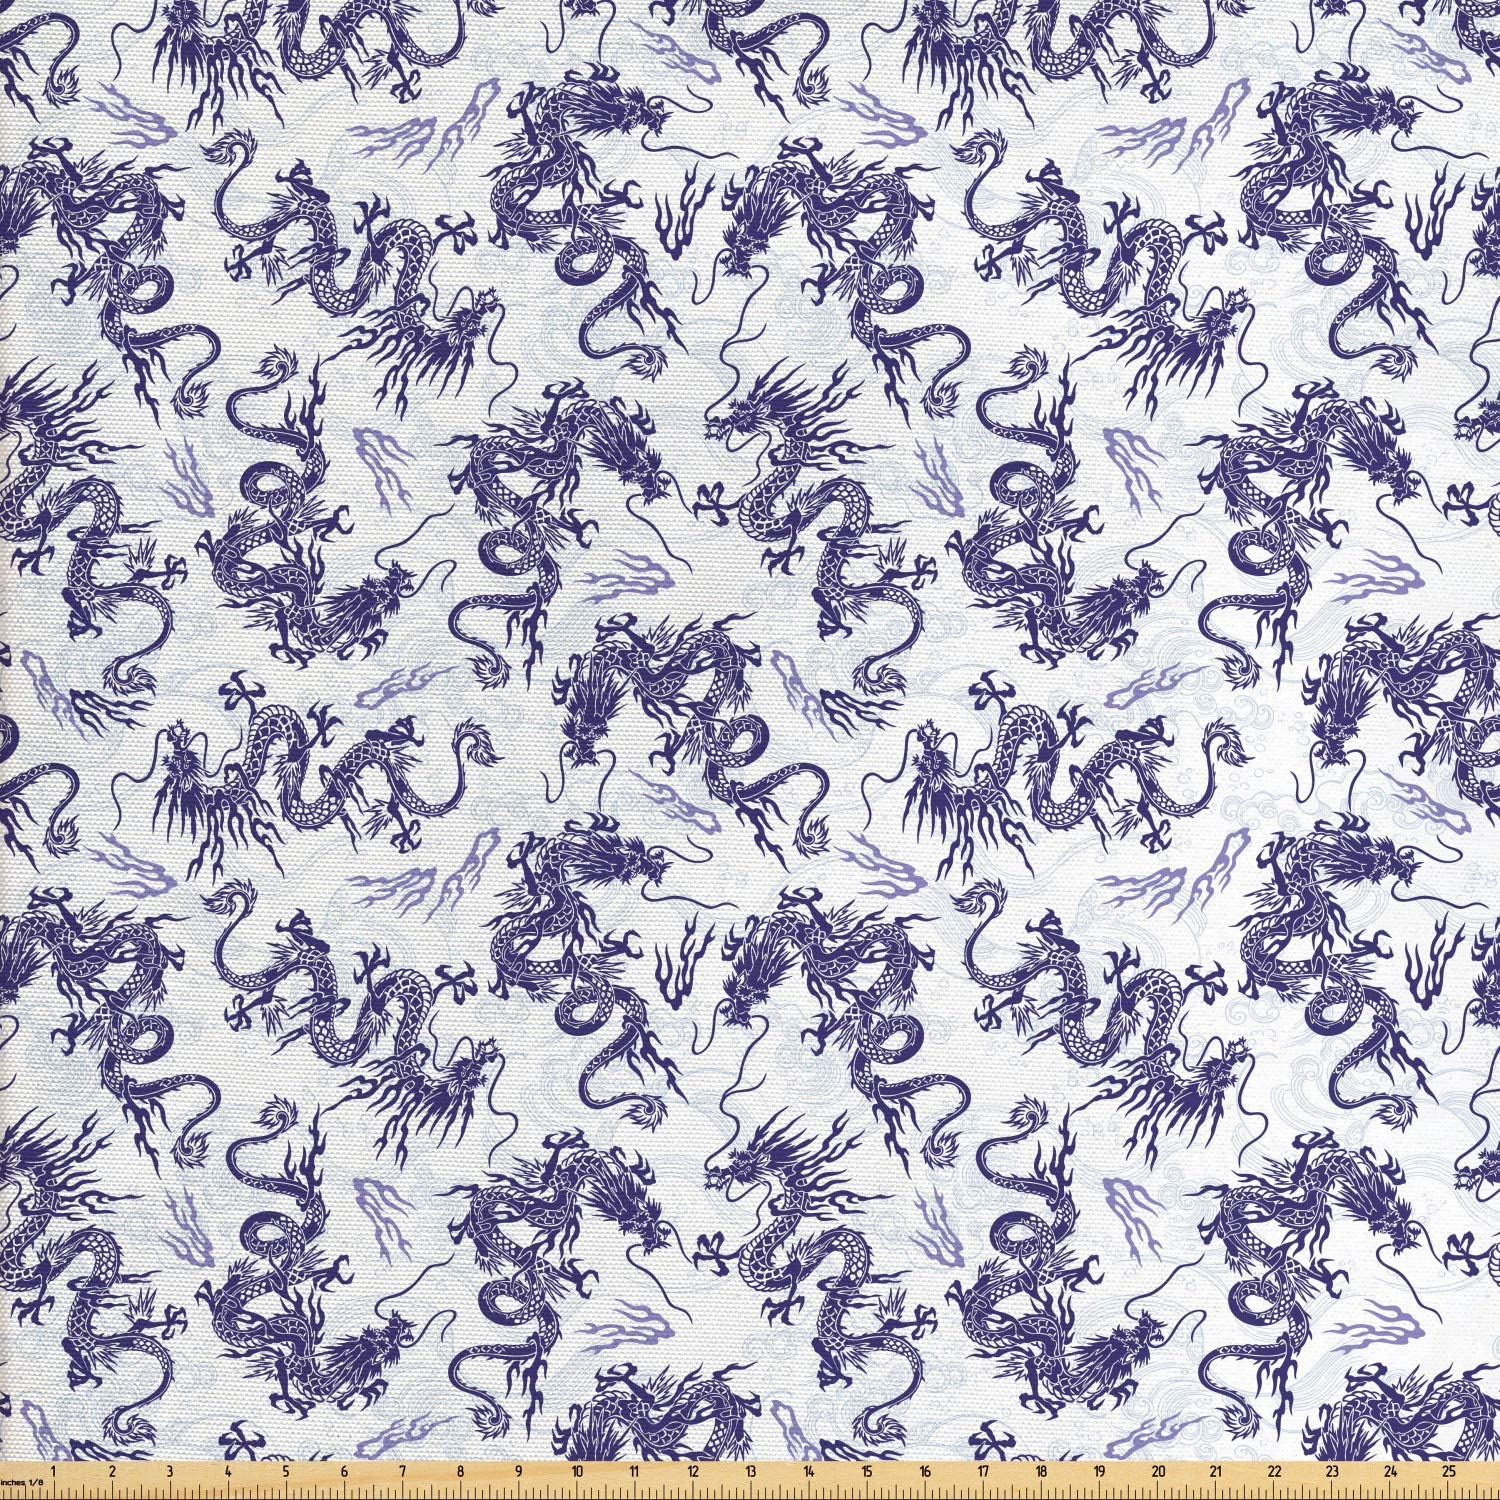 Lunarable Dragon Fabric by The Yard, Japanese Dragon Illustration Head Covered in Fire Ferocious Oriental Pattern, Decorative Fabric for Upholstery and Home Accents, 1 Yard, White Purple